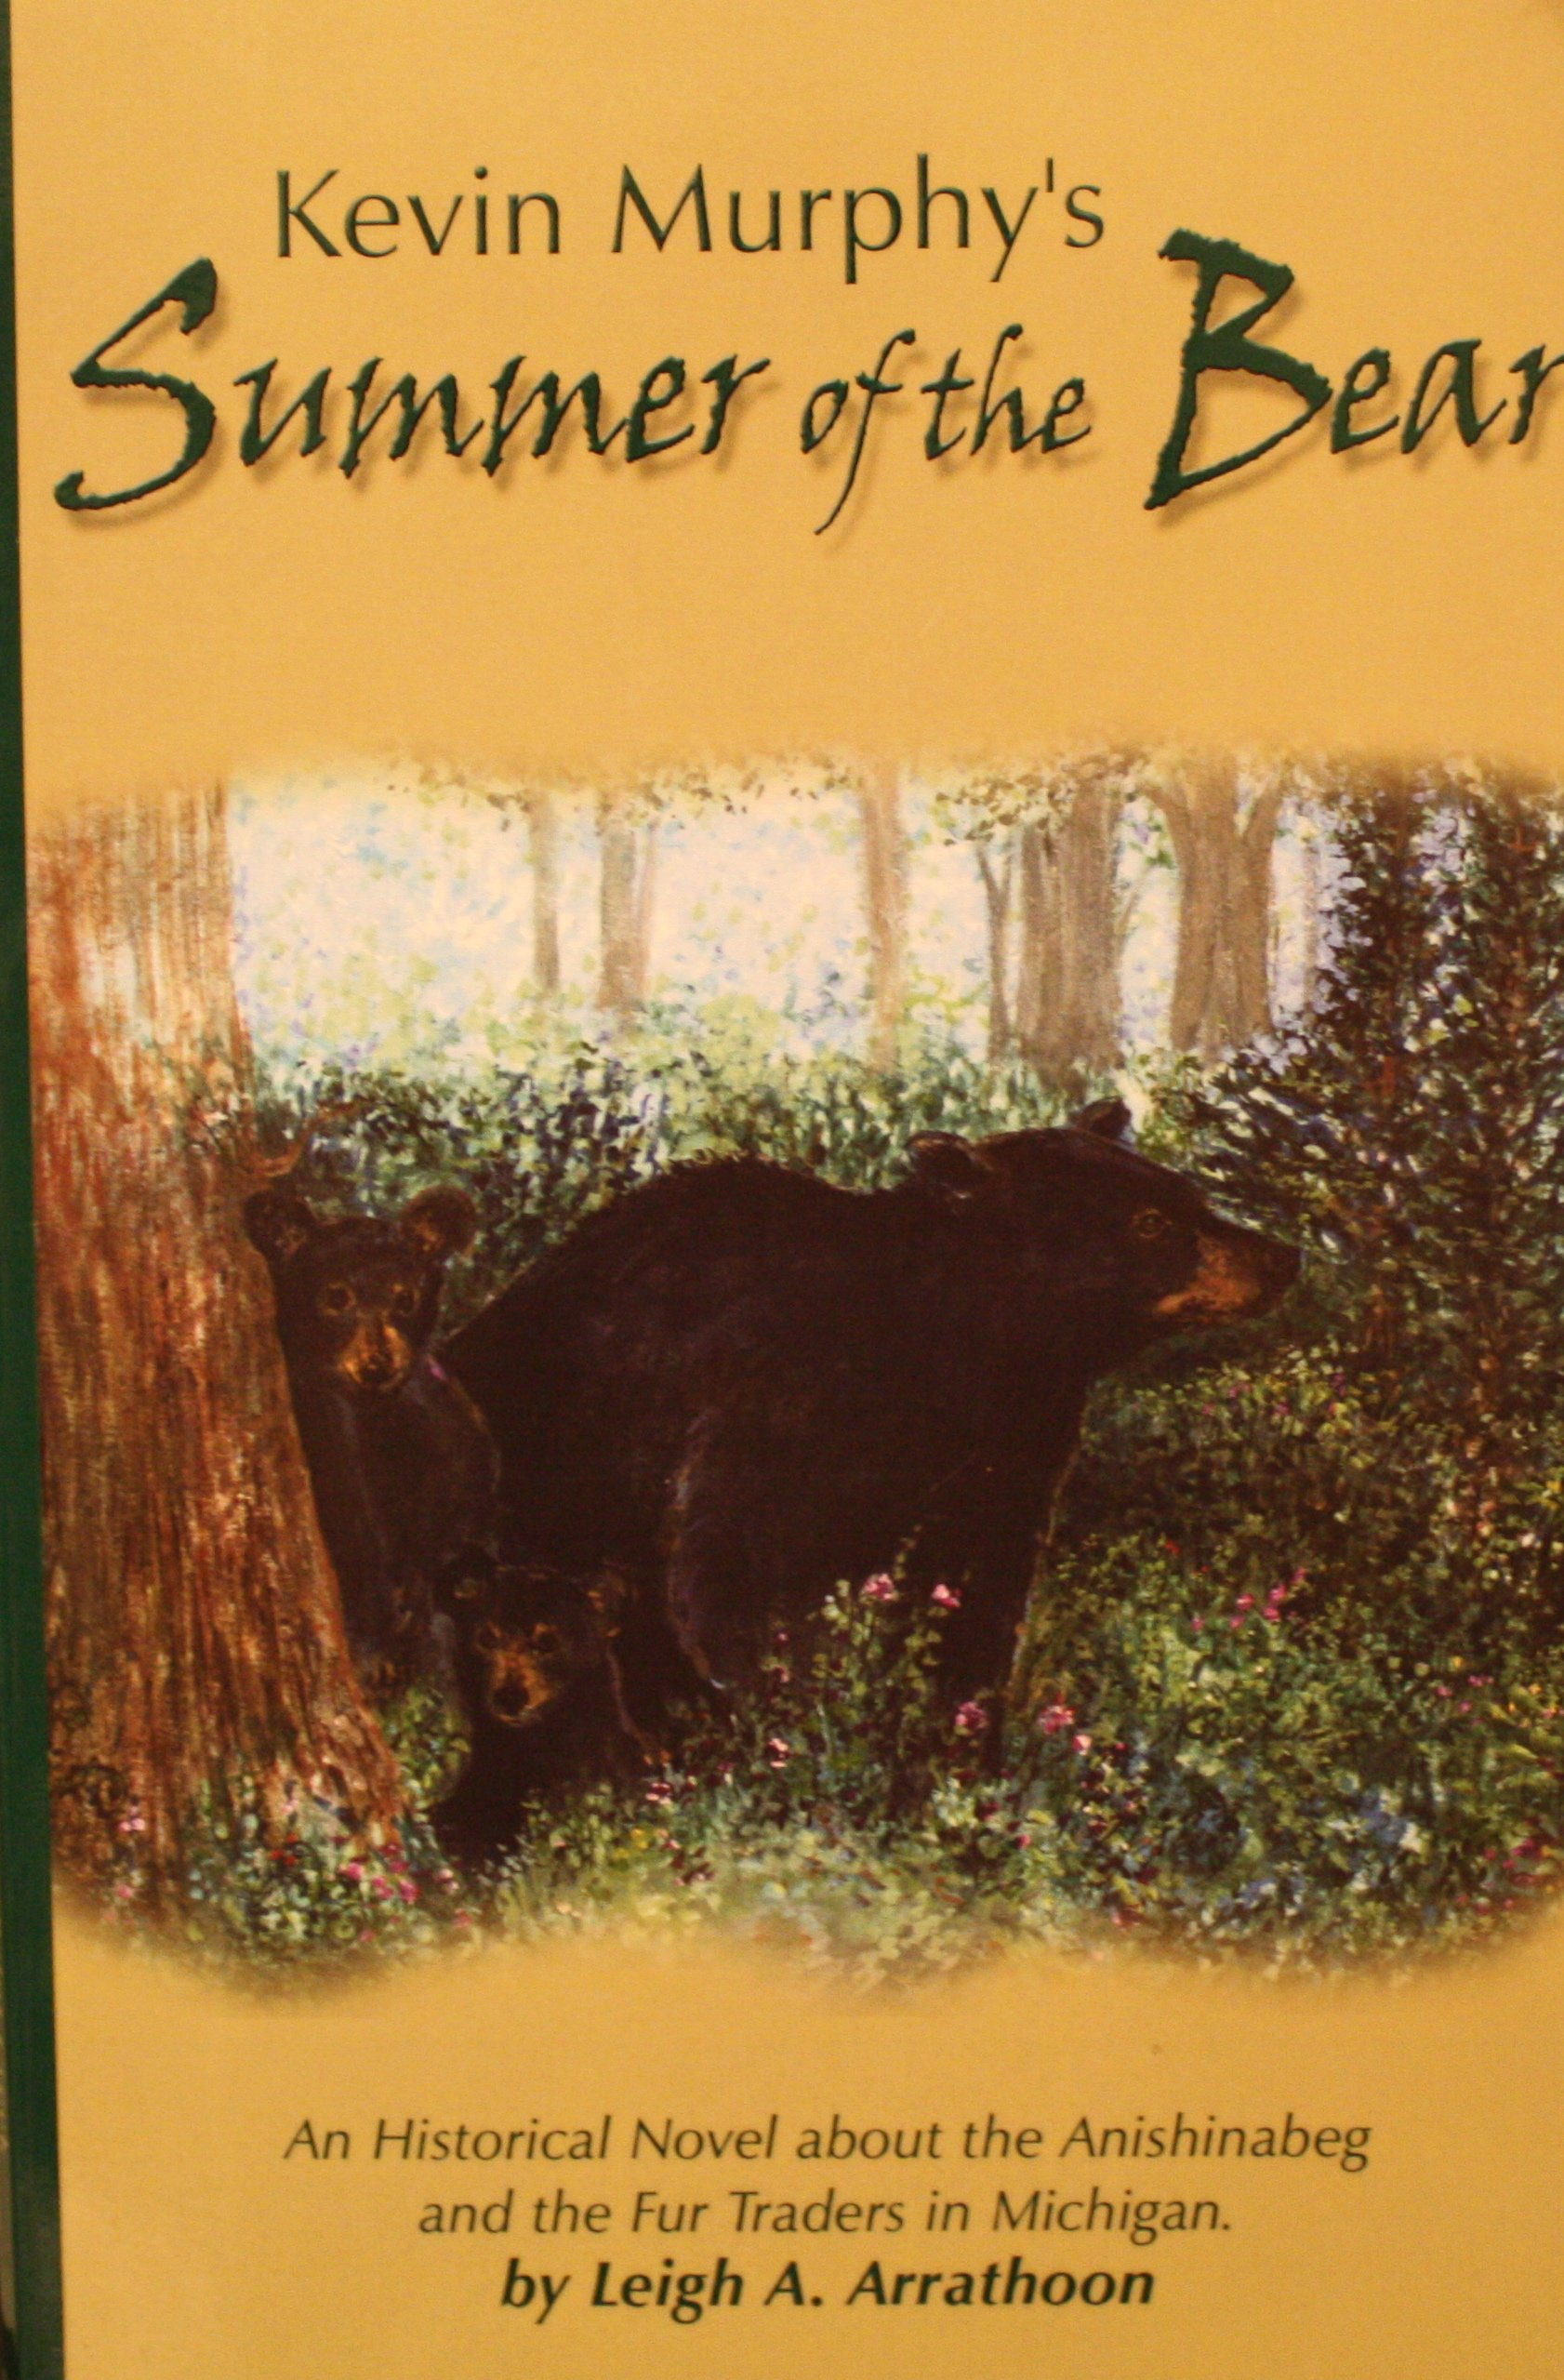 Download Kevin Murphy's Summer of the Bear: An Historical Novel about the Anishinabeg and the Fur Traders in Michigan PDF